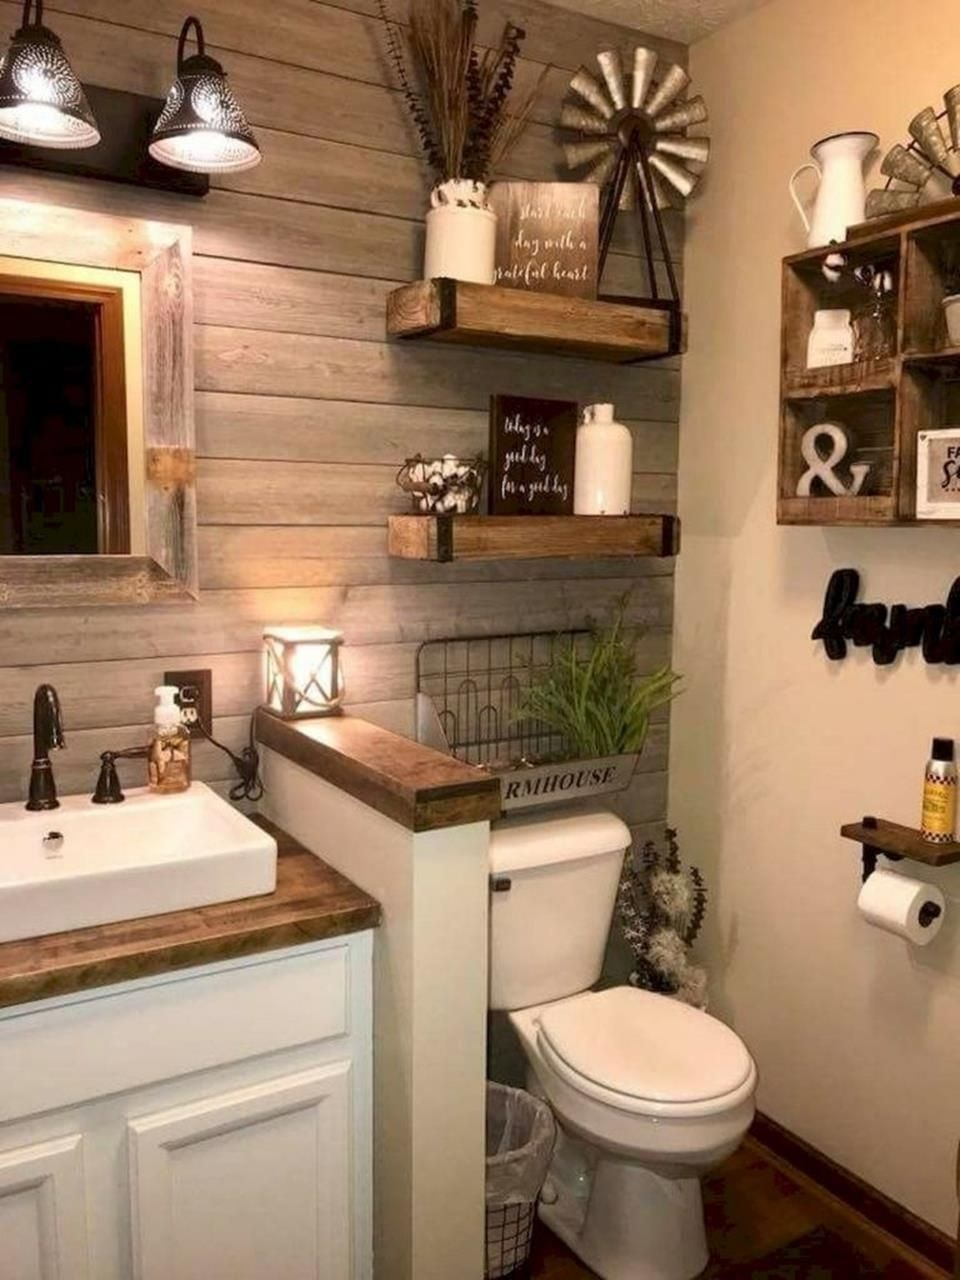 50 Stunning Rustic Farmhouse Bathroom Decorating Ideas 9  Remodelación De Baños Decoracion De